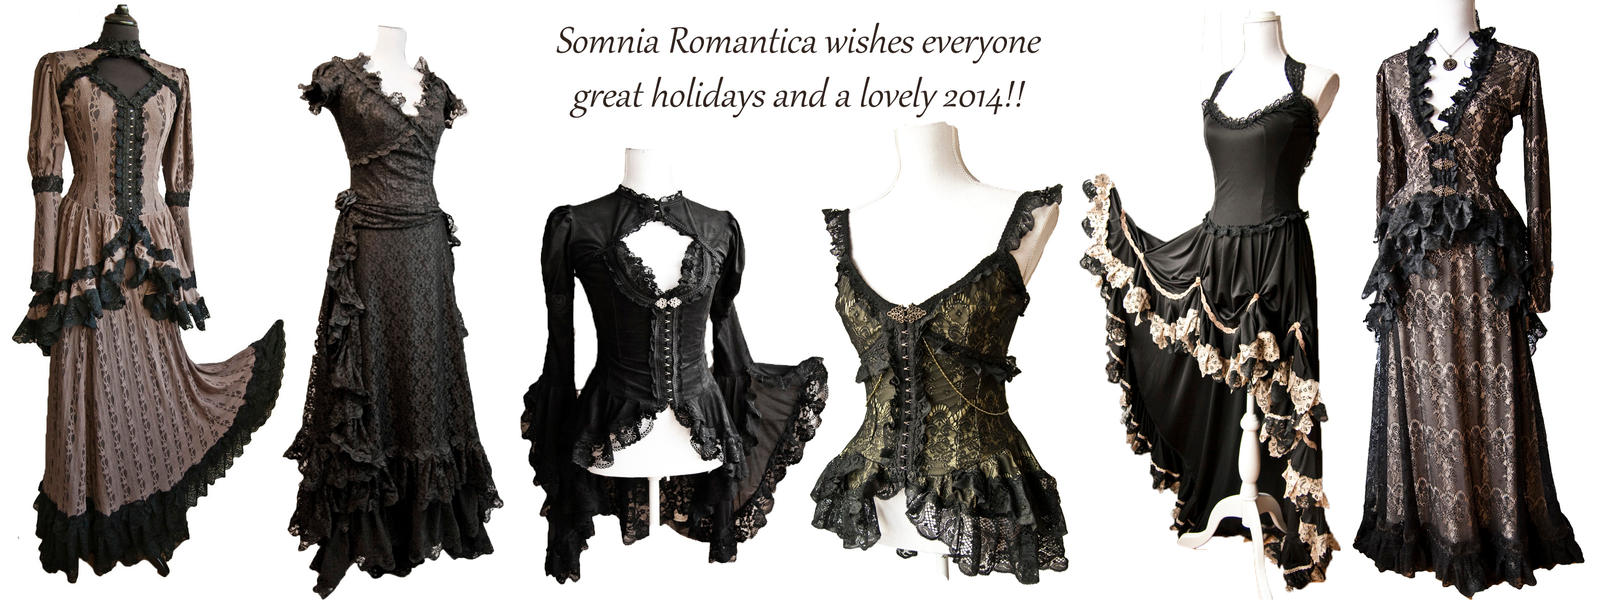 Happy Holidays! (with some pieces from 2013 :-) ) by SomniaRomantica